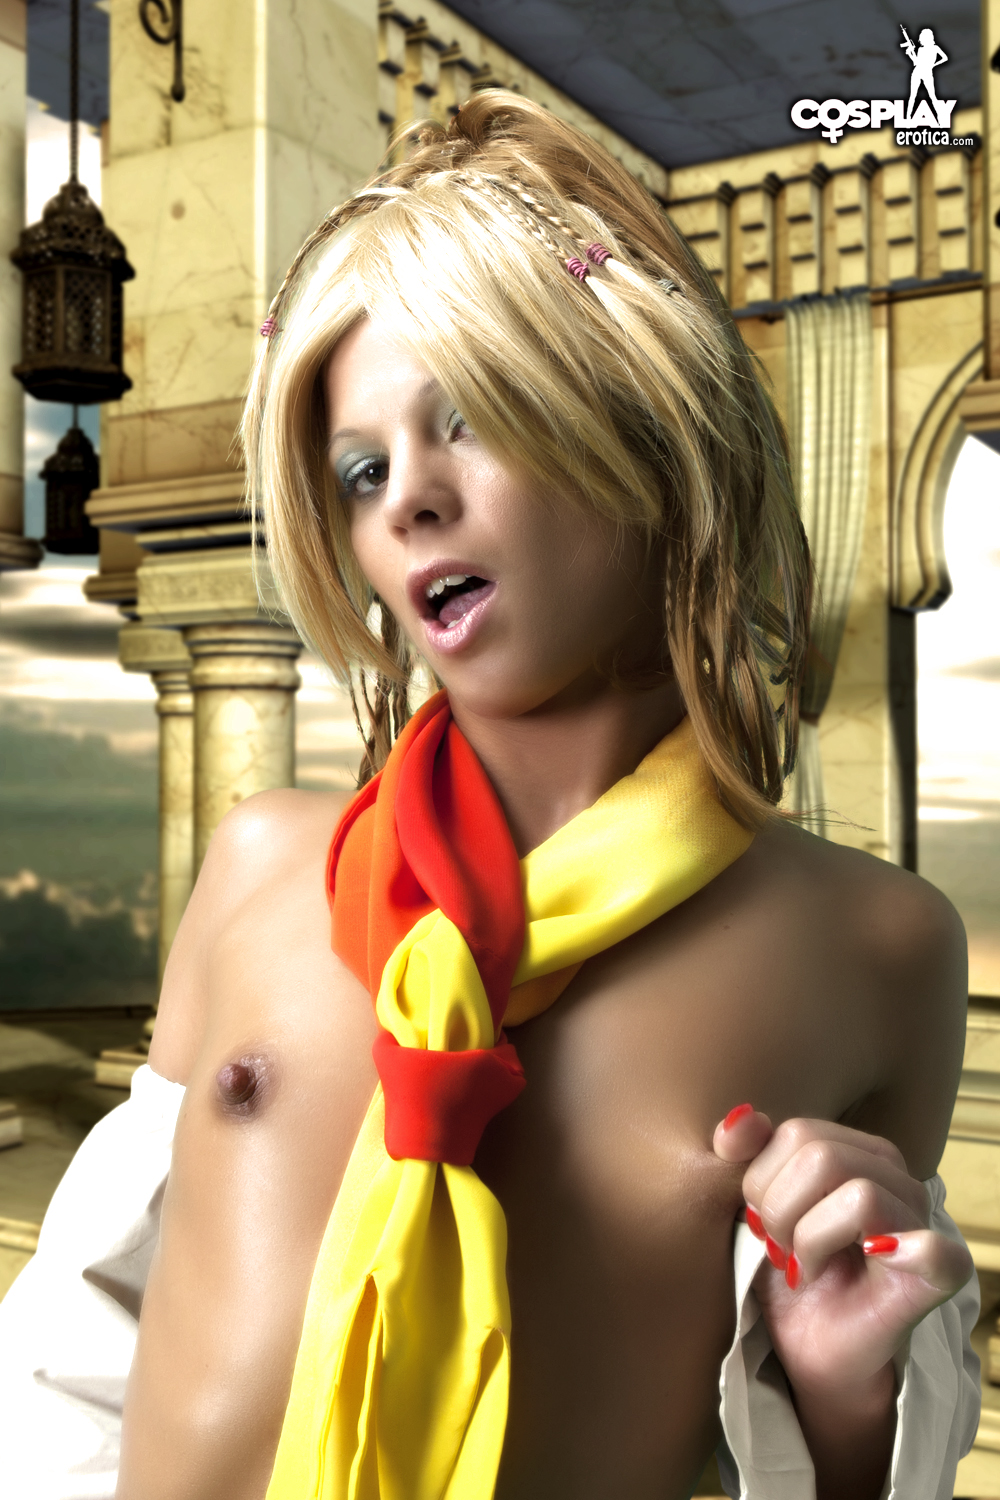 from Yosef final fantasy x nude pics